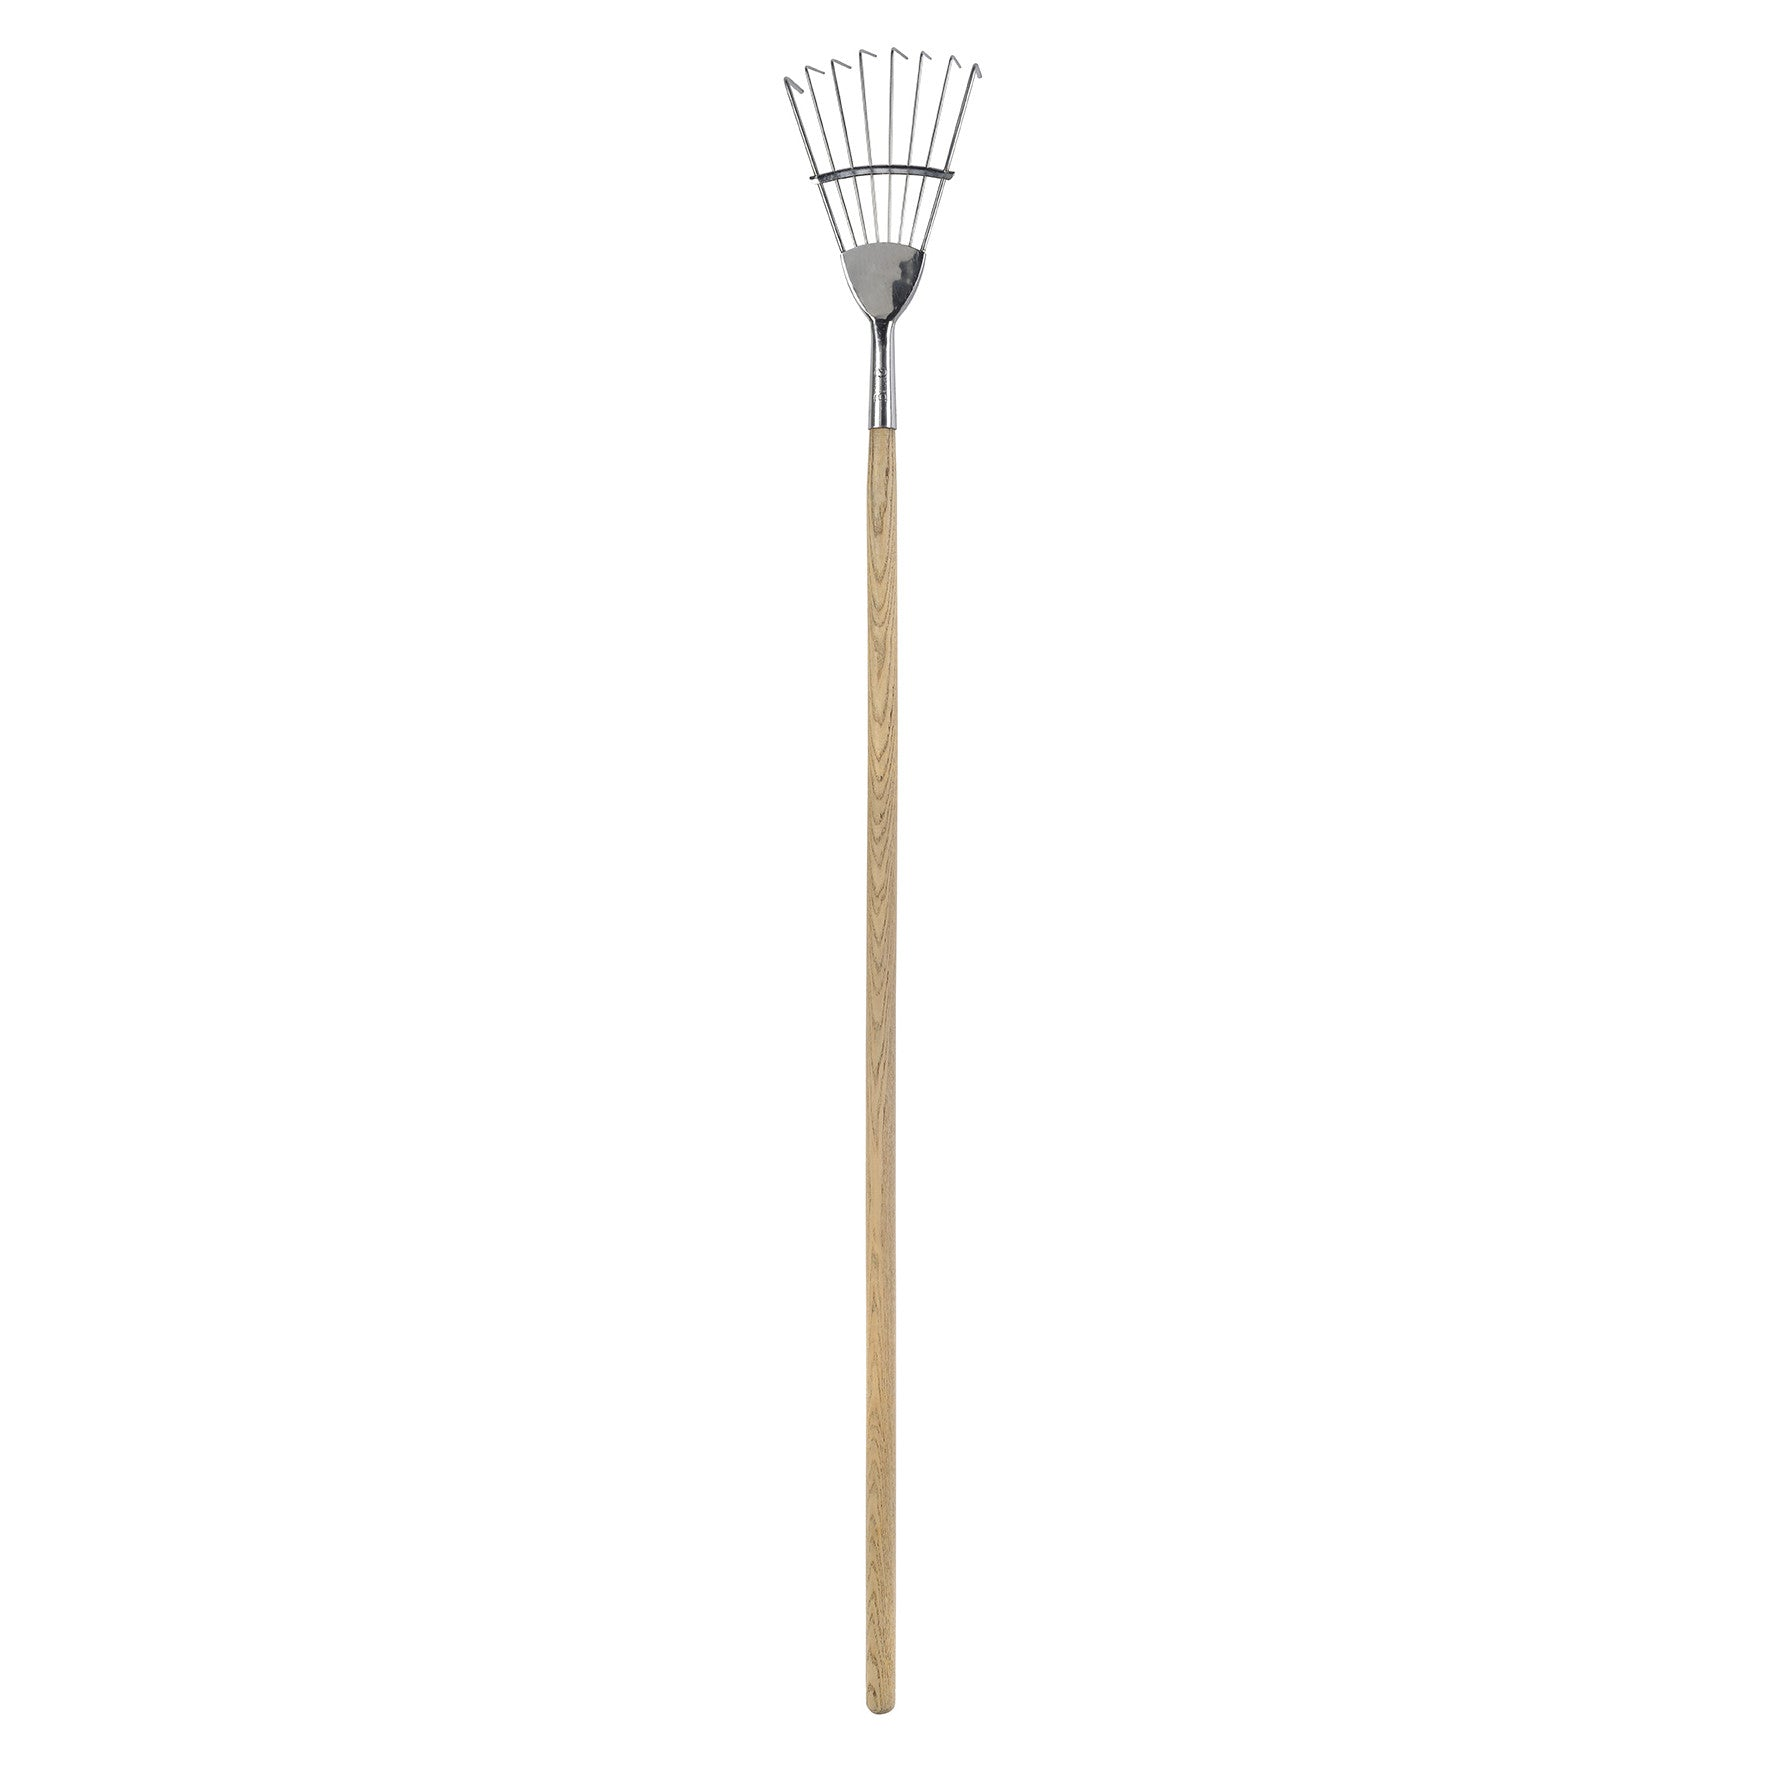 Stainless Steel - Long Handled Culti-Rake